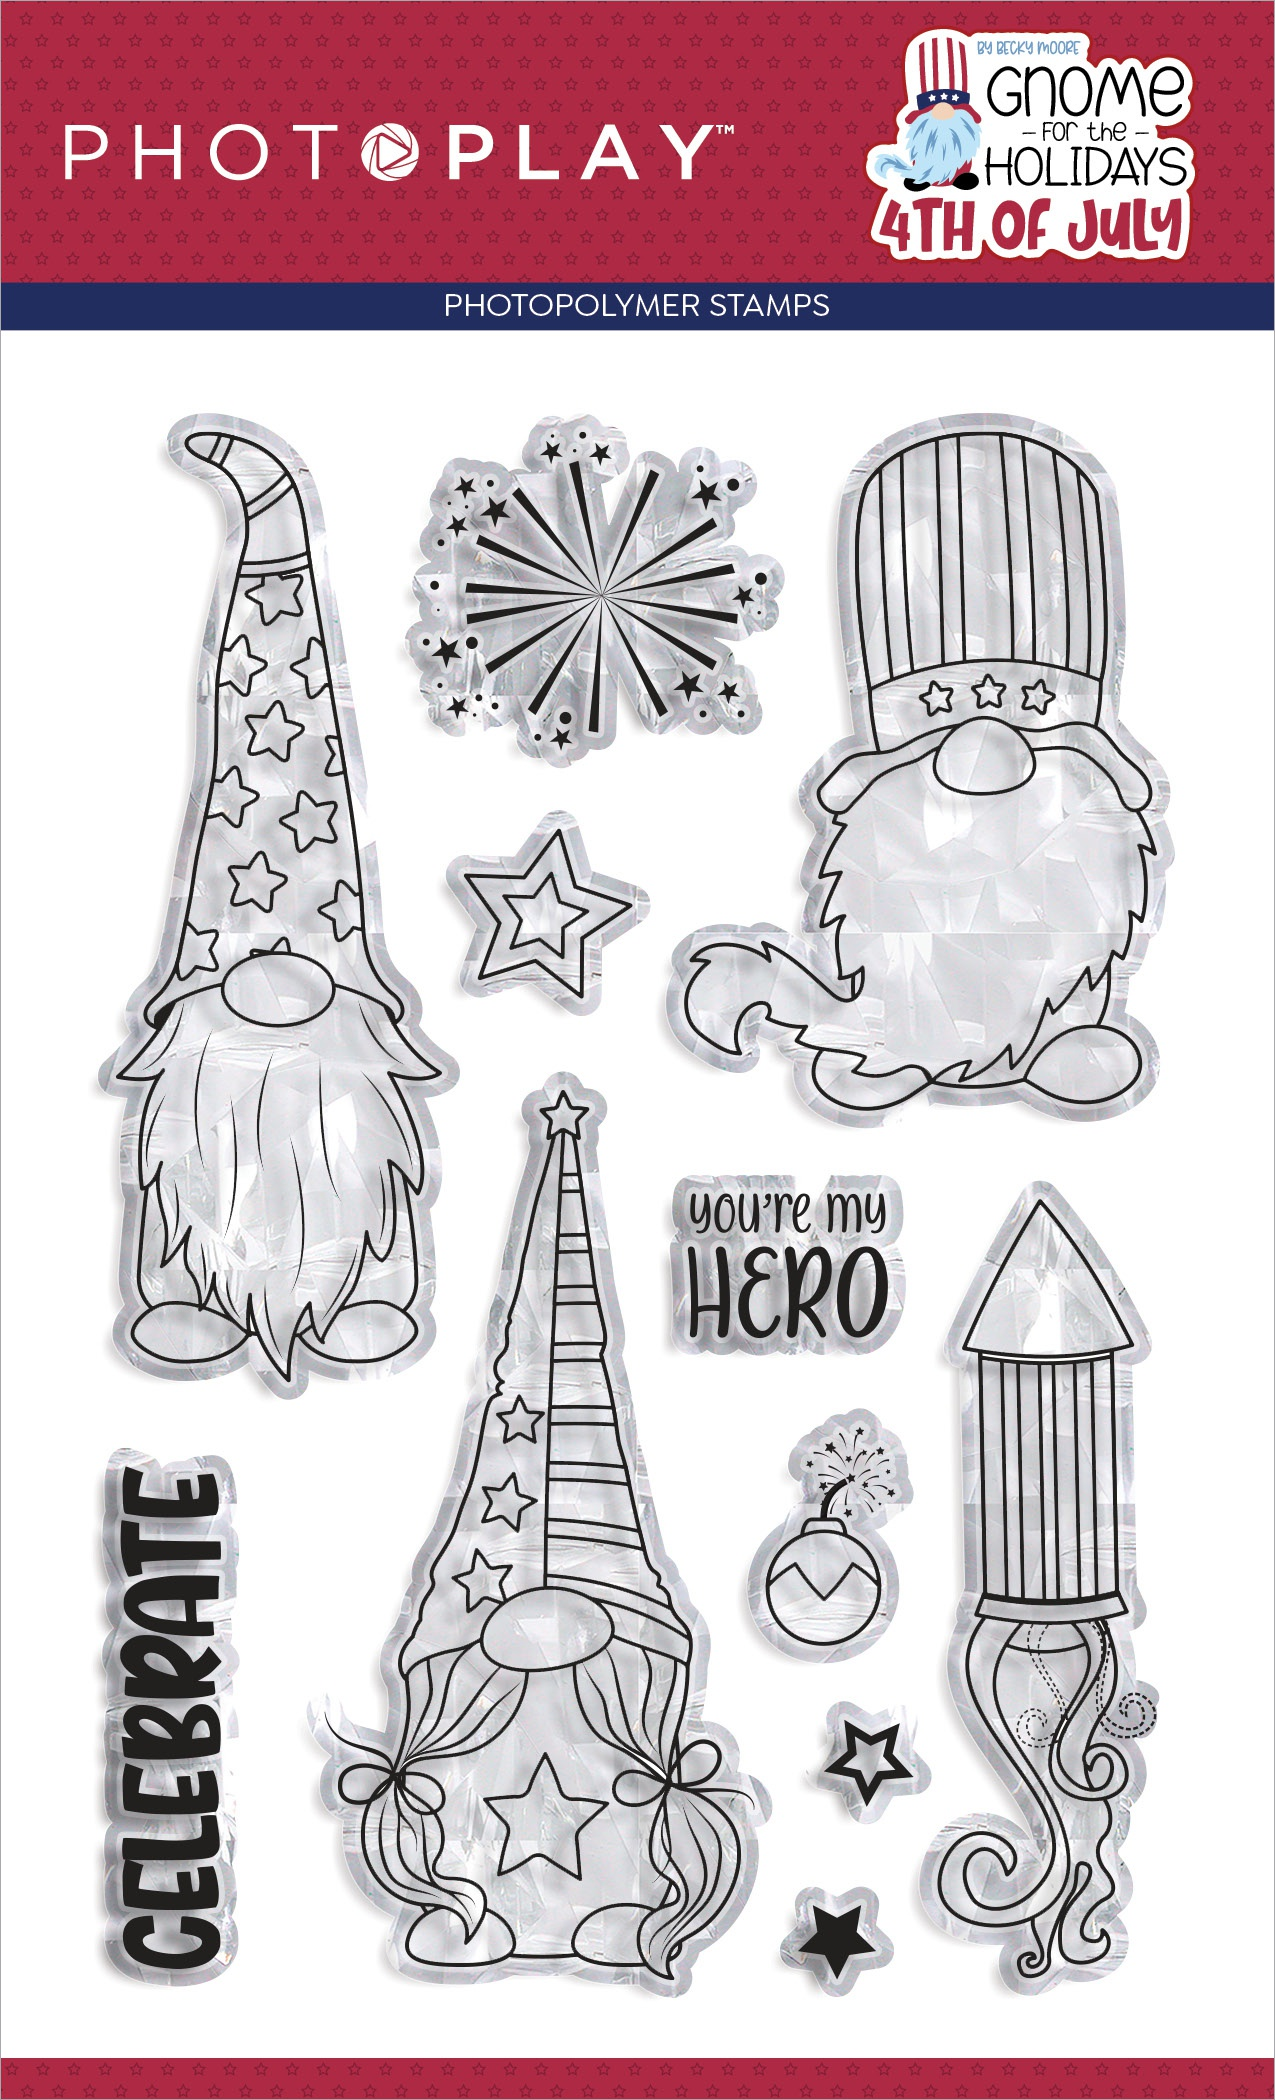 PhotoPlay Photopolymer Stamp-Gnome For July 4th